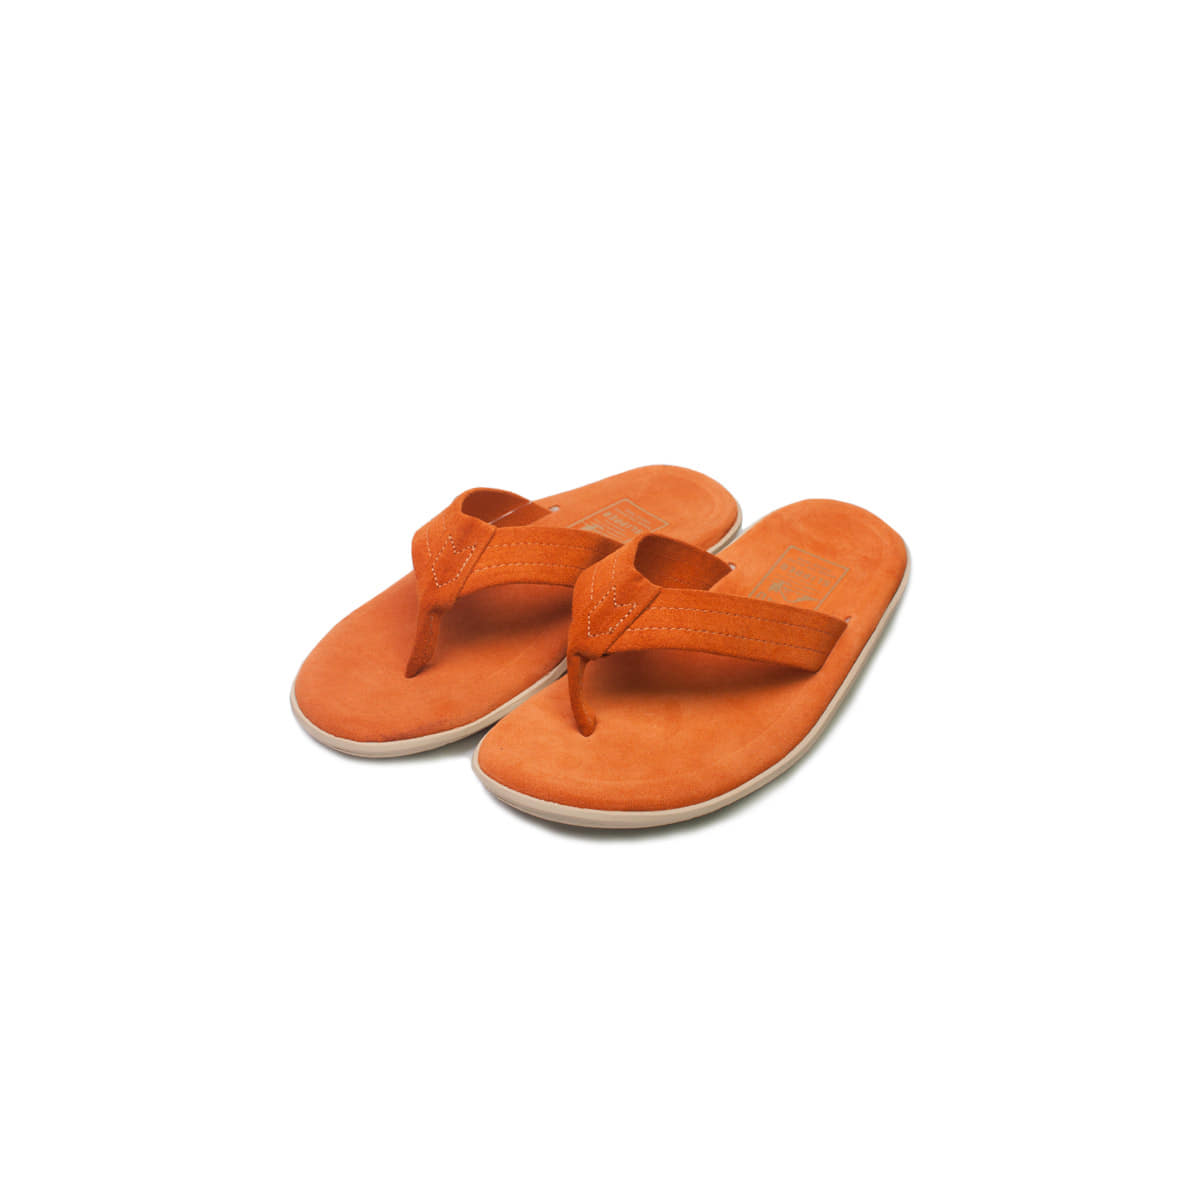 [ISLAND SLIPPER] PT203 'ORANGE SUEDE'